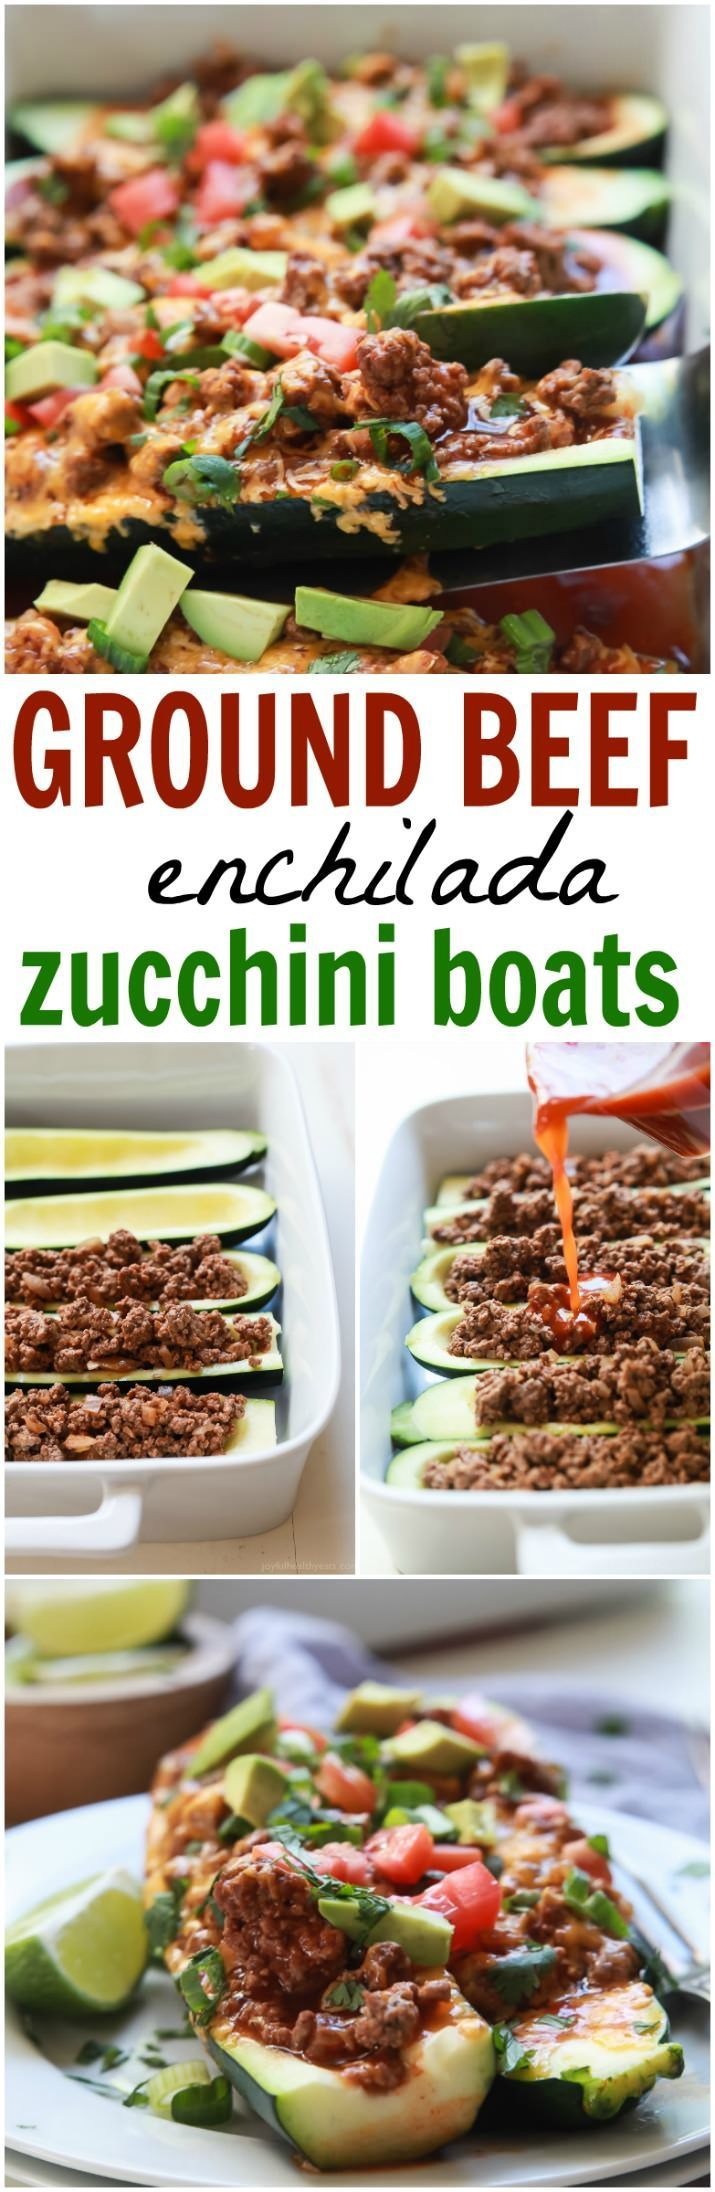 Ground Beef Enchilada Zucchini Boats - a healthy gluten free version of classic Beef Enchiladas. A little over 30 minutes to make but well worth it for the bold flavors and a calorie count of 222!   joyfulhealthyeats.com